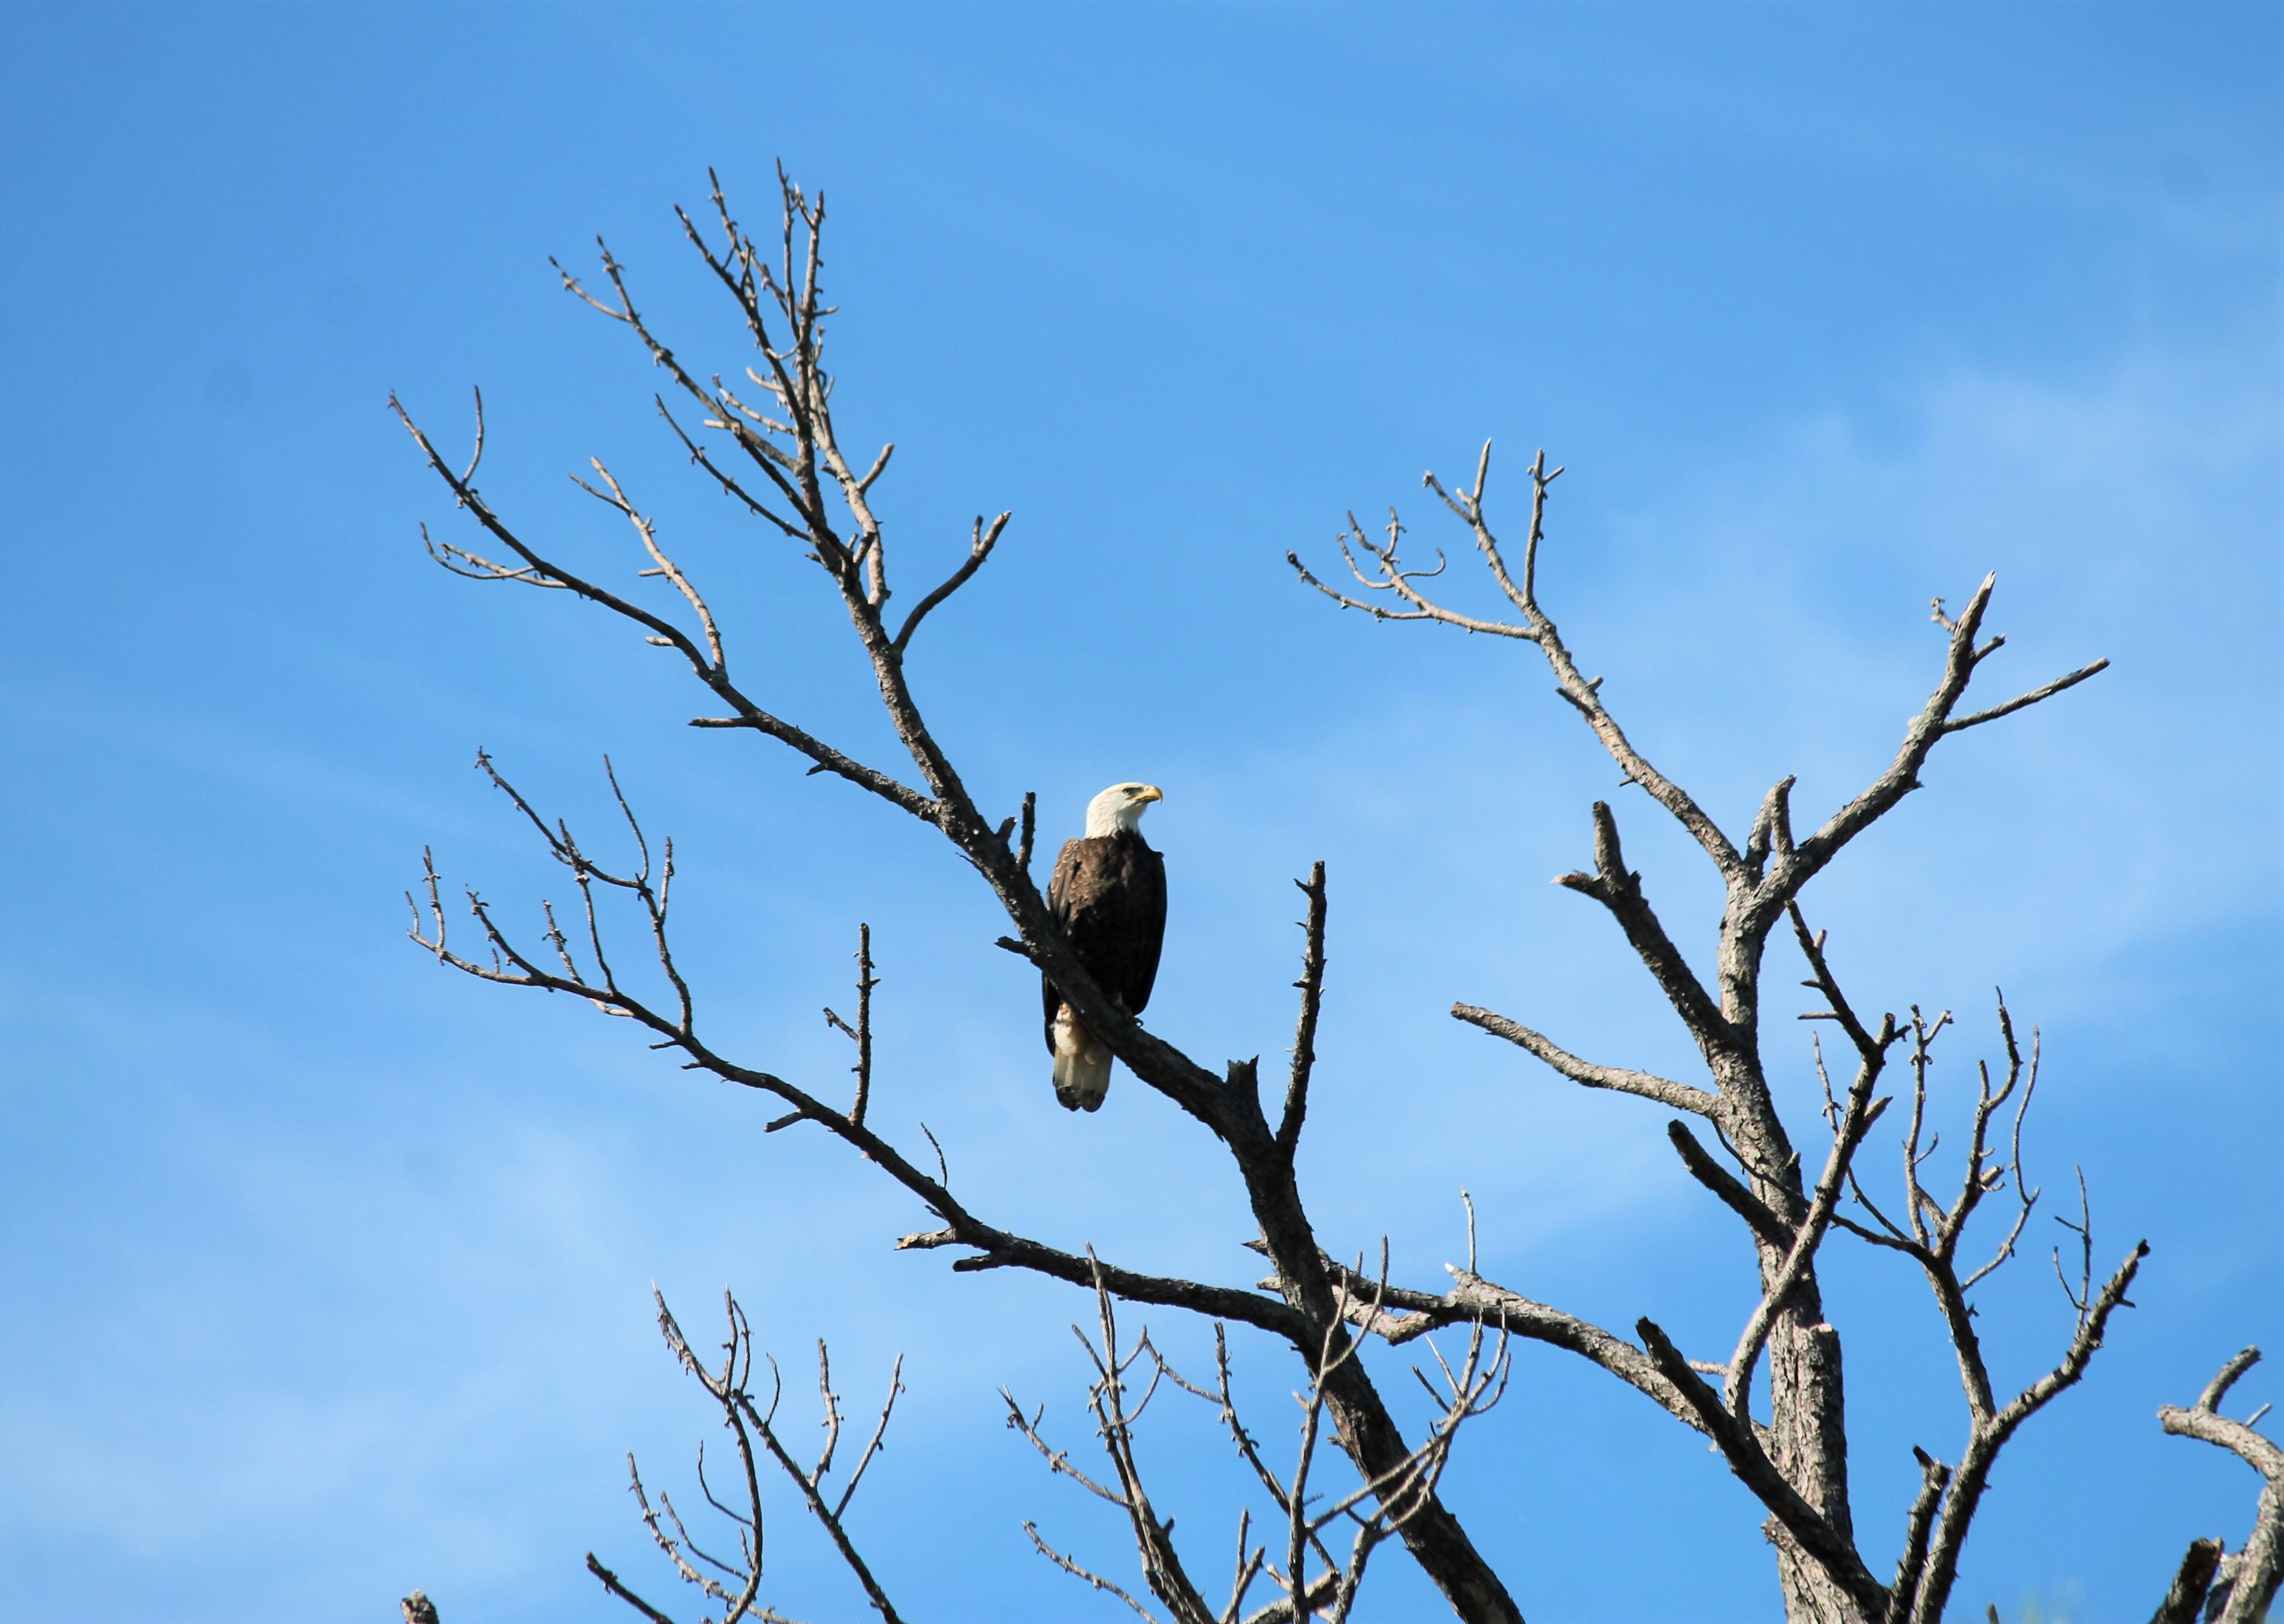 Bald Eagle Perched on a Tree. Photo by Farren Dell